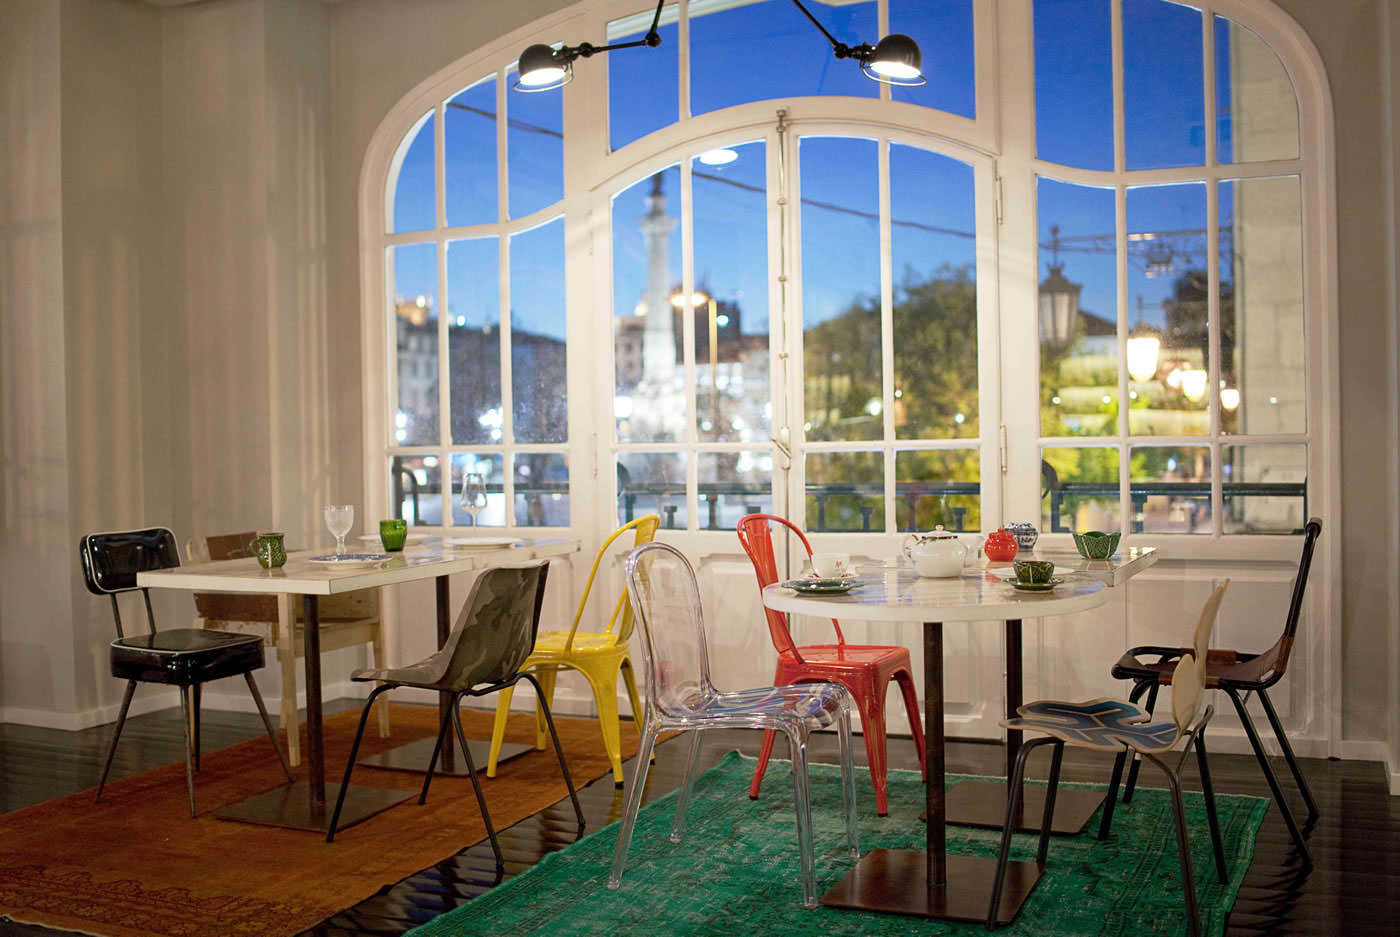 Internacional design hotel boutique hotel in lisbon for Design hotel 1690